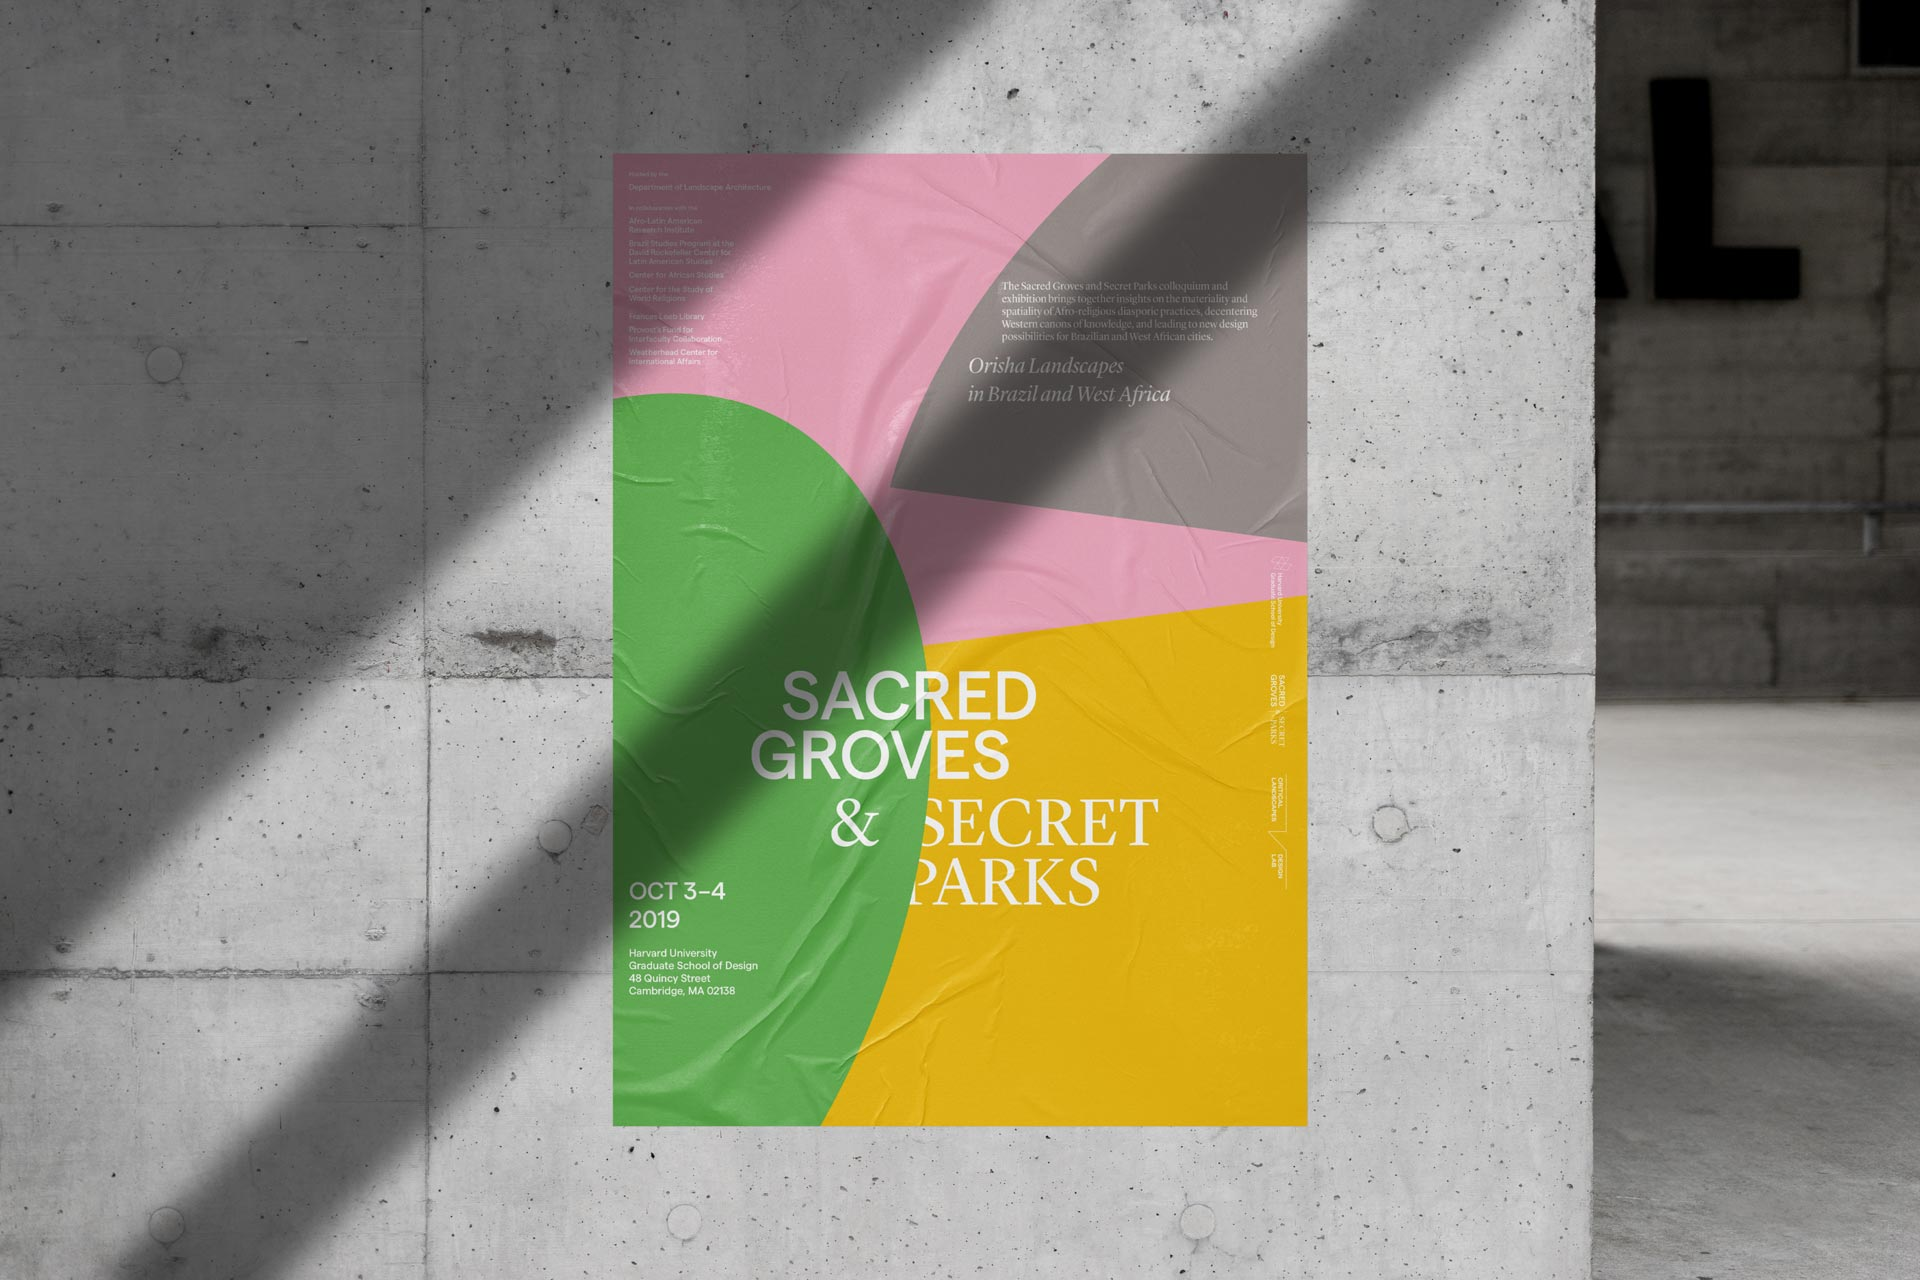 Sacred Groves & Secret Parks